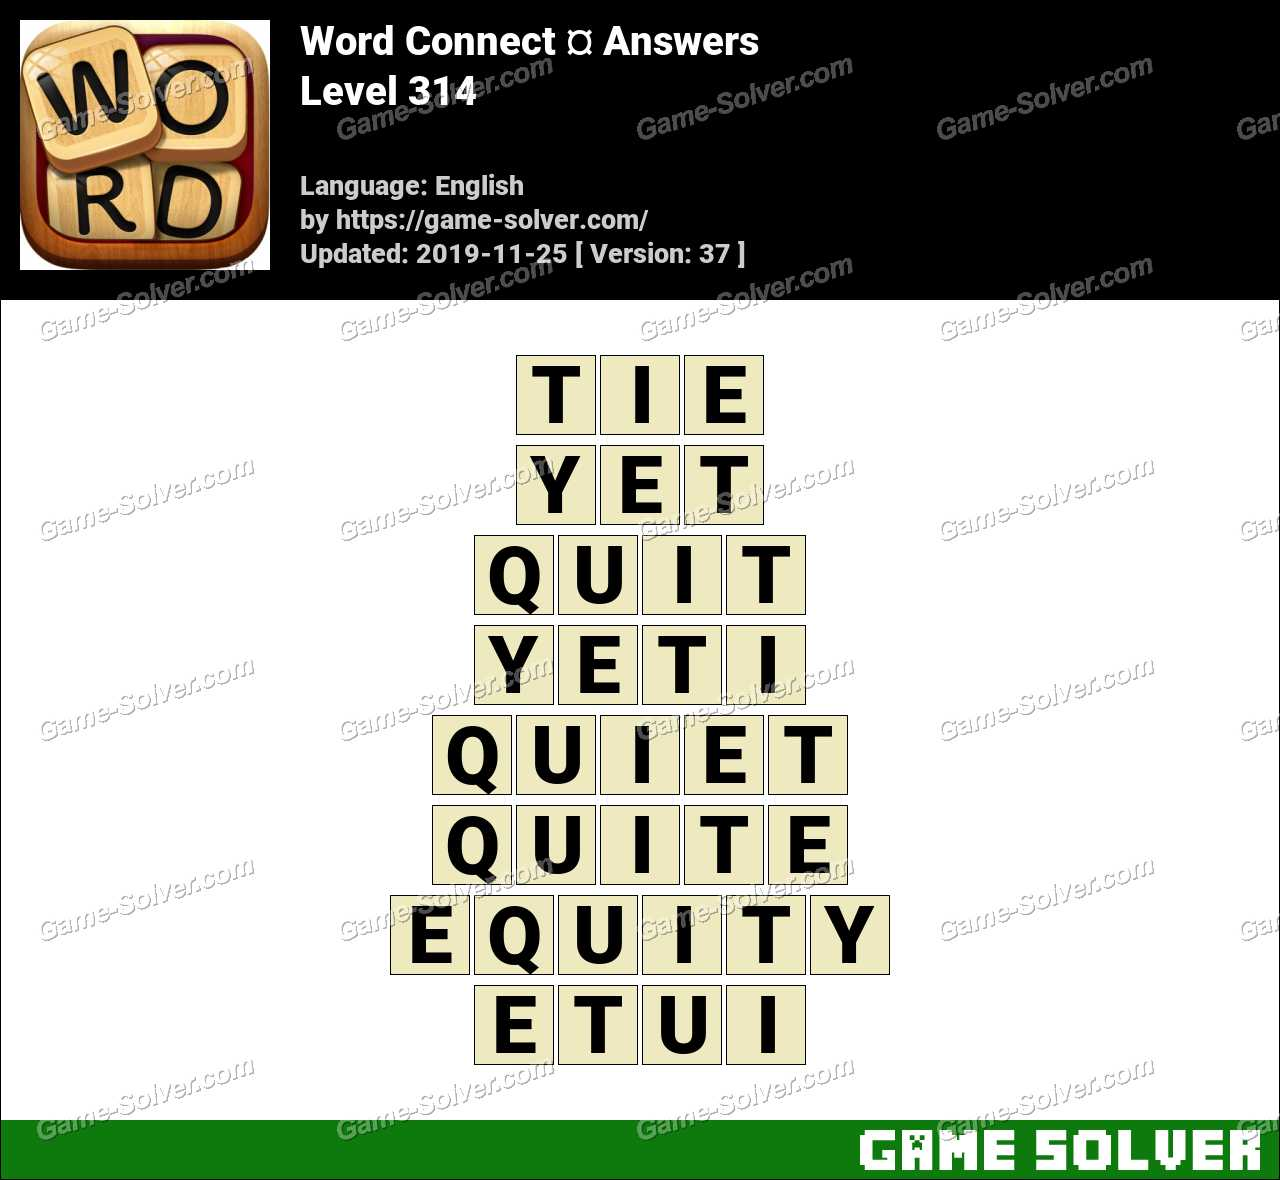 Word Connect Level 314 Answers